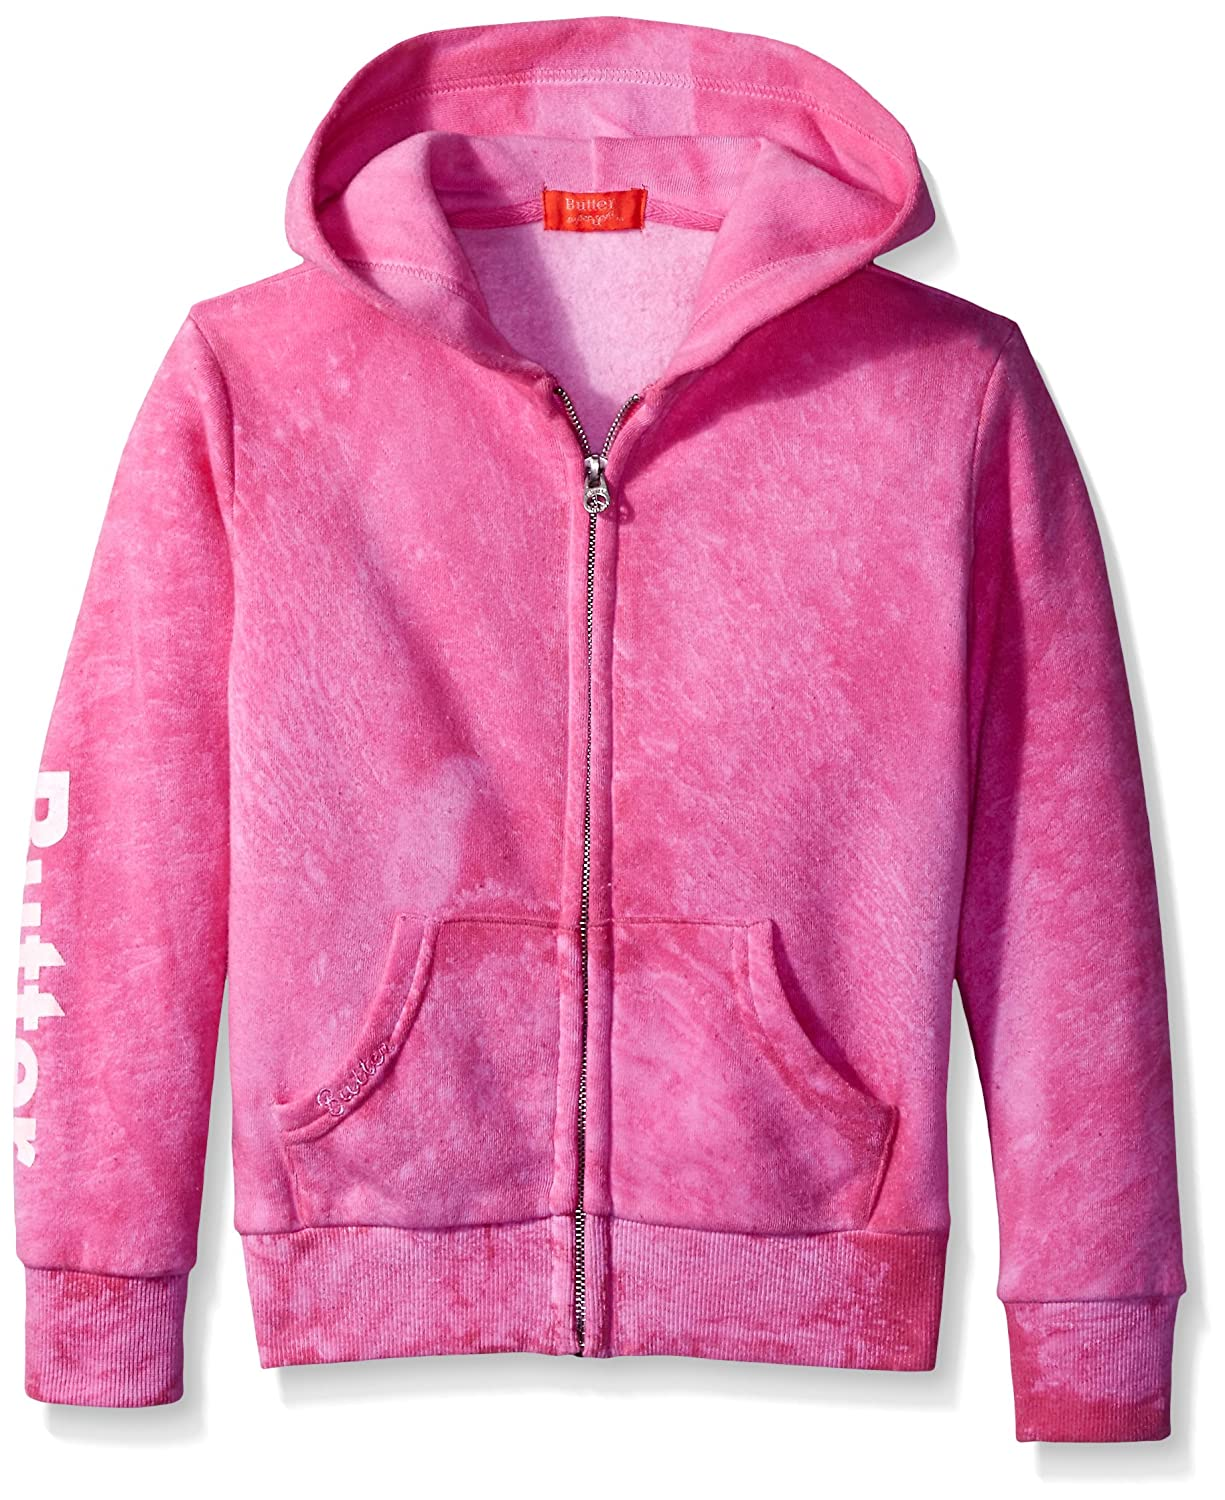 6a6a8a0c2 BUTTER SUPER SOFT Girl's Long Sleeve Fleece Dip Dye Graphic Hoodie  Sweatshirt: Amazon.in: Clothing & Accessories